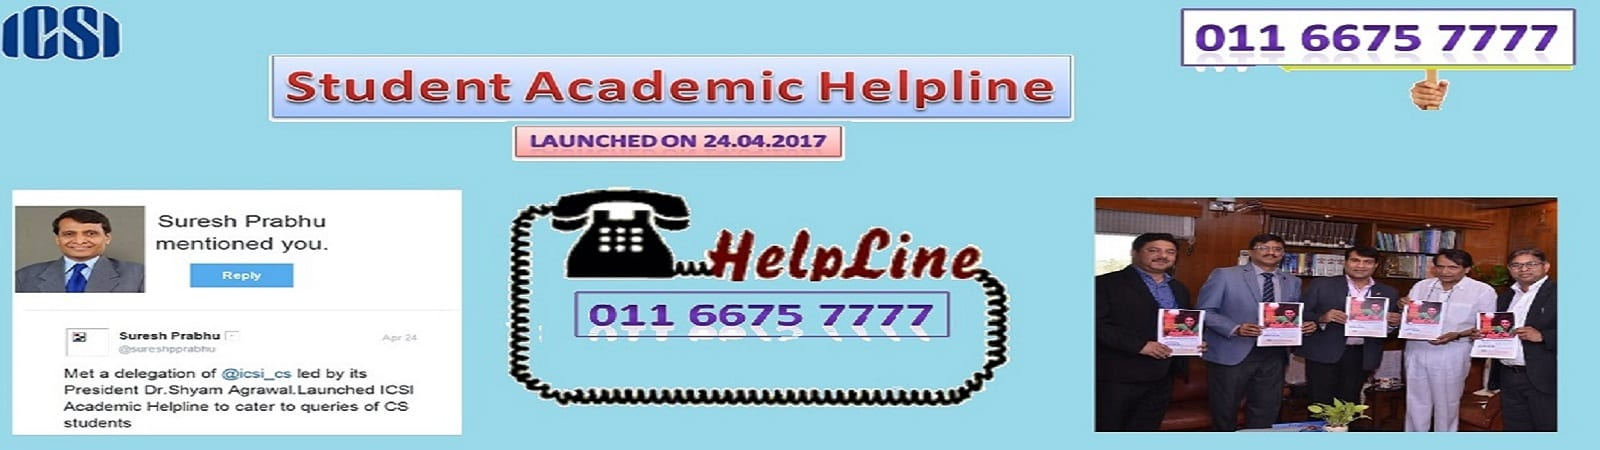 Institute of Company Secretaries of India (ICSI) launches academic helpline for CS students